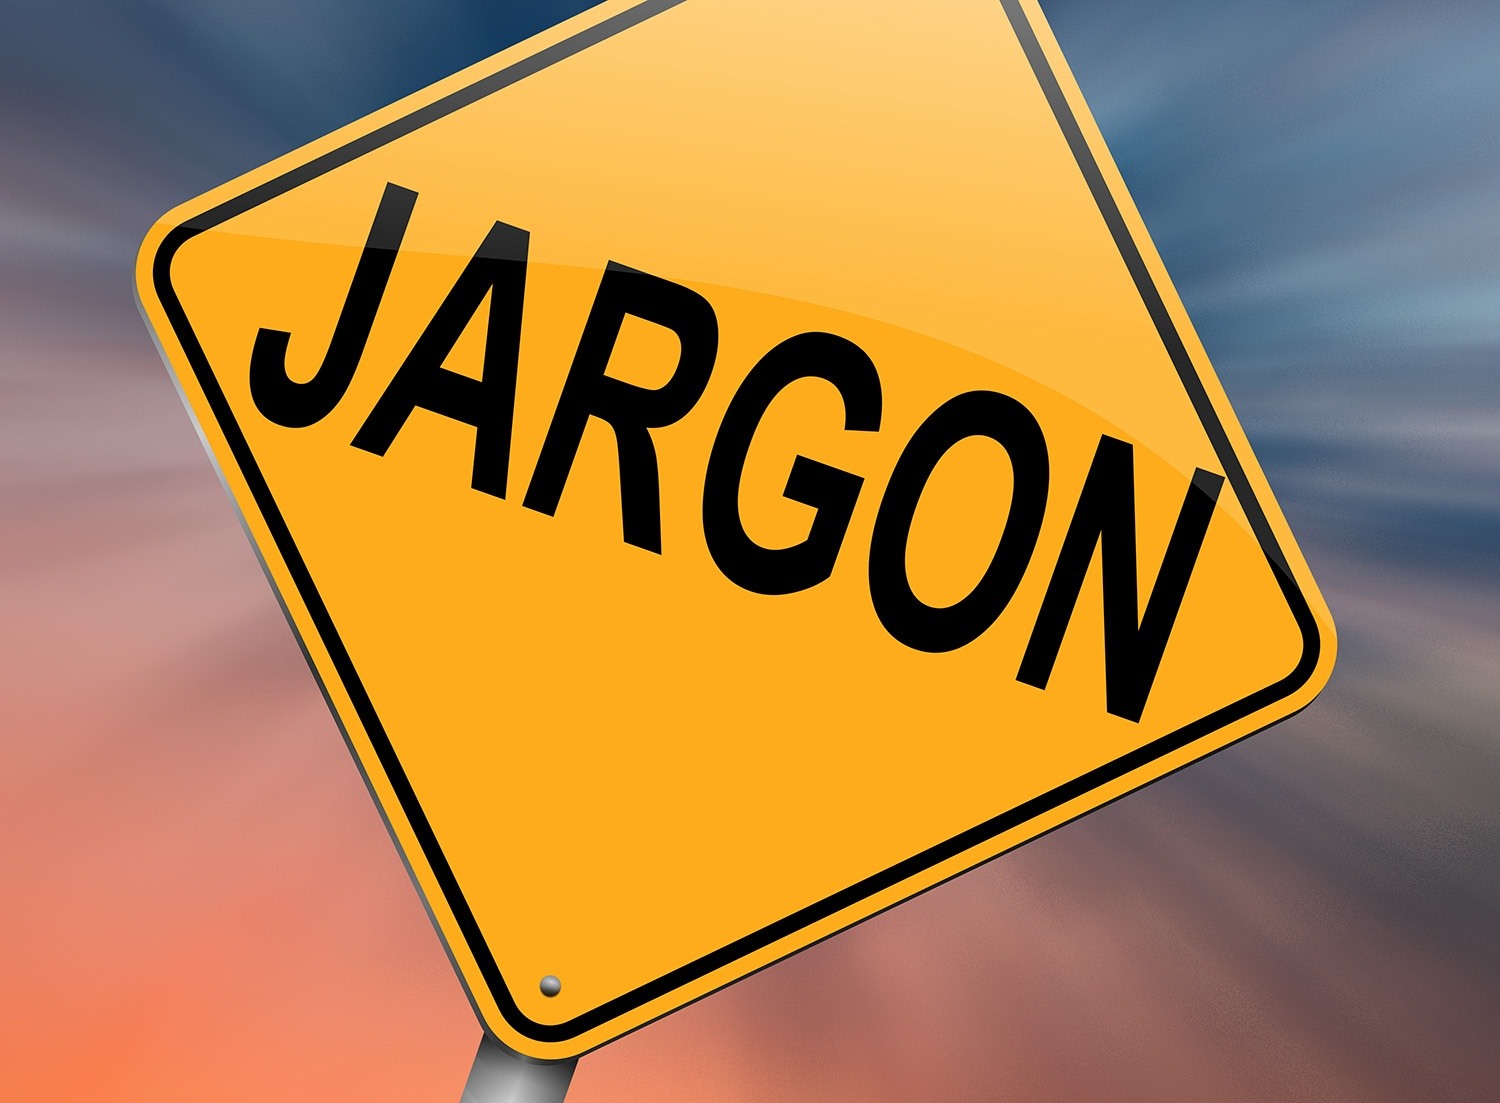 Cybersecurity Jargon Explained - A Glossary for Regular People